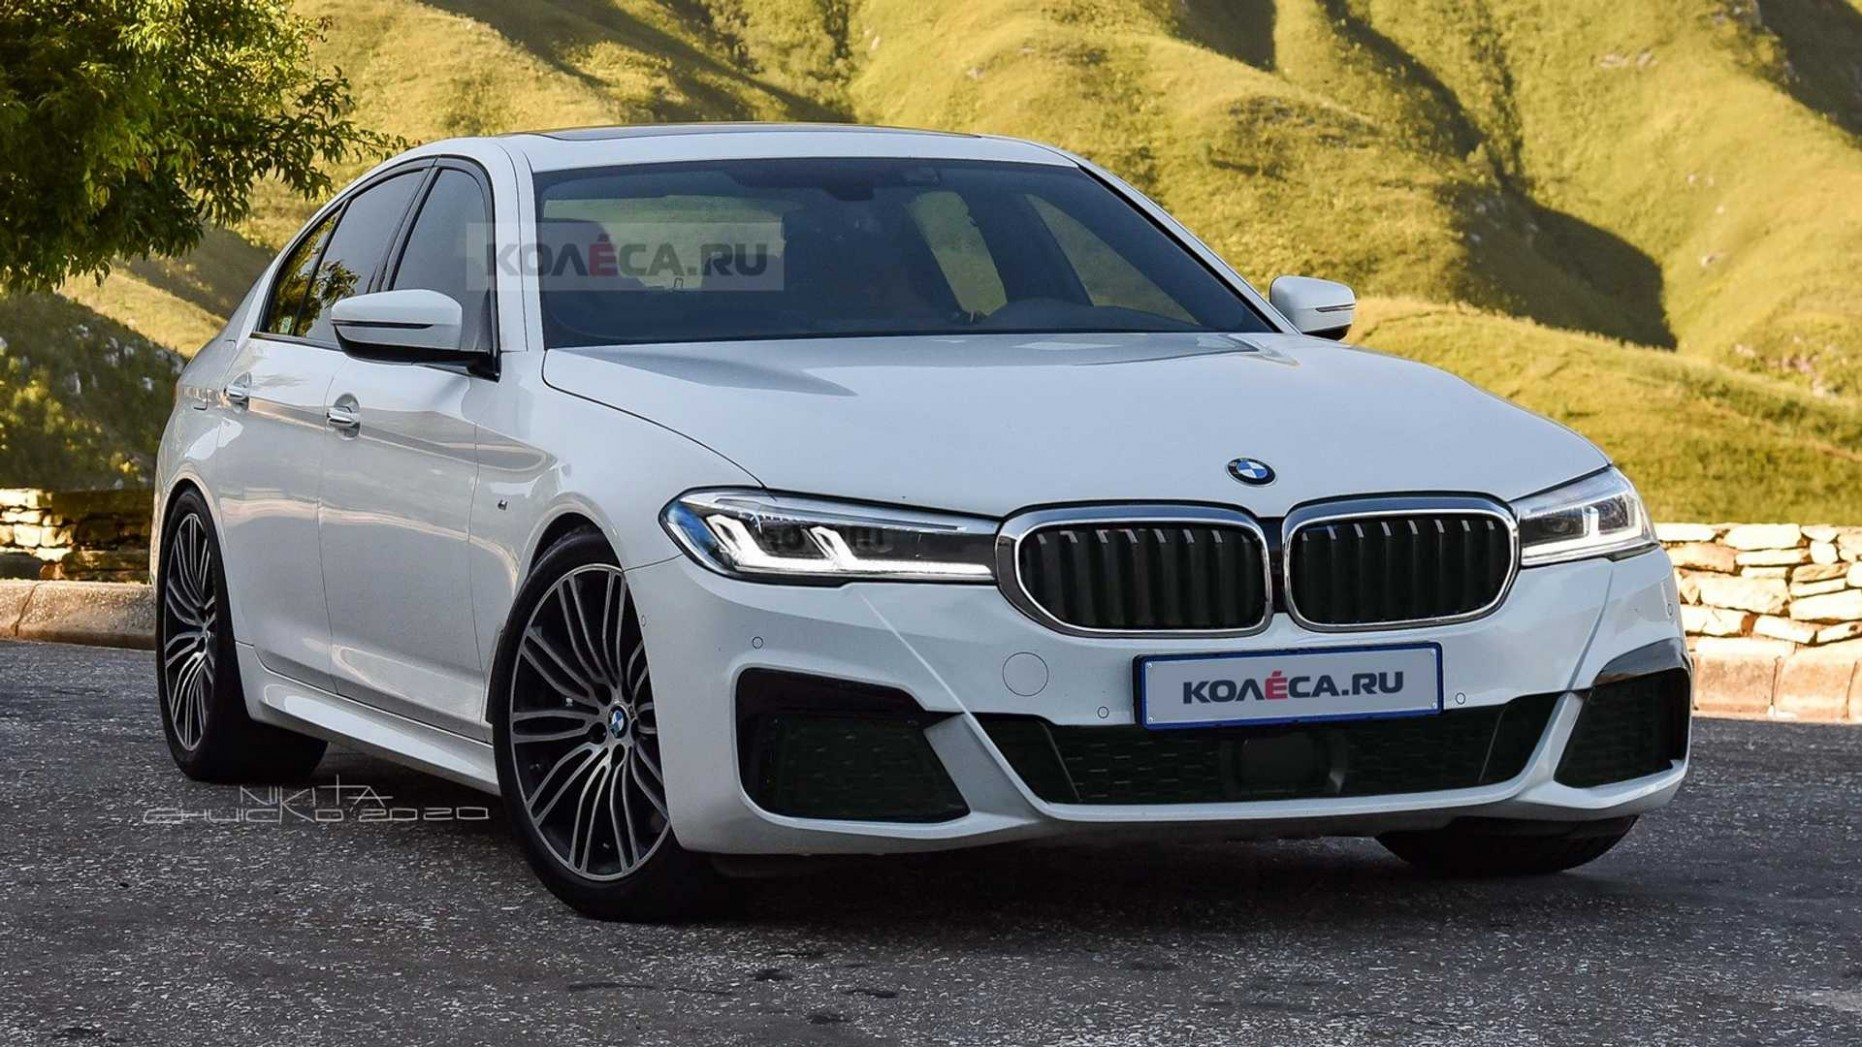 5 BMW 5 Series Rendering Imagines The Subtle Facelift - BMW New 5 Series 2021